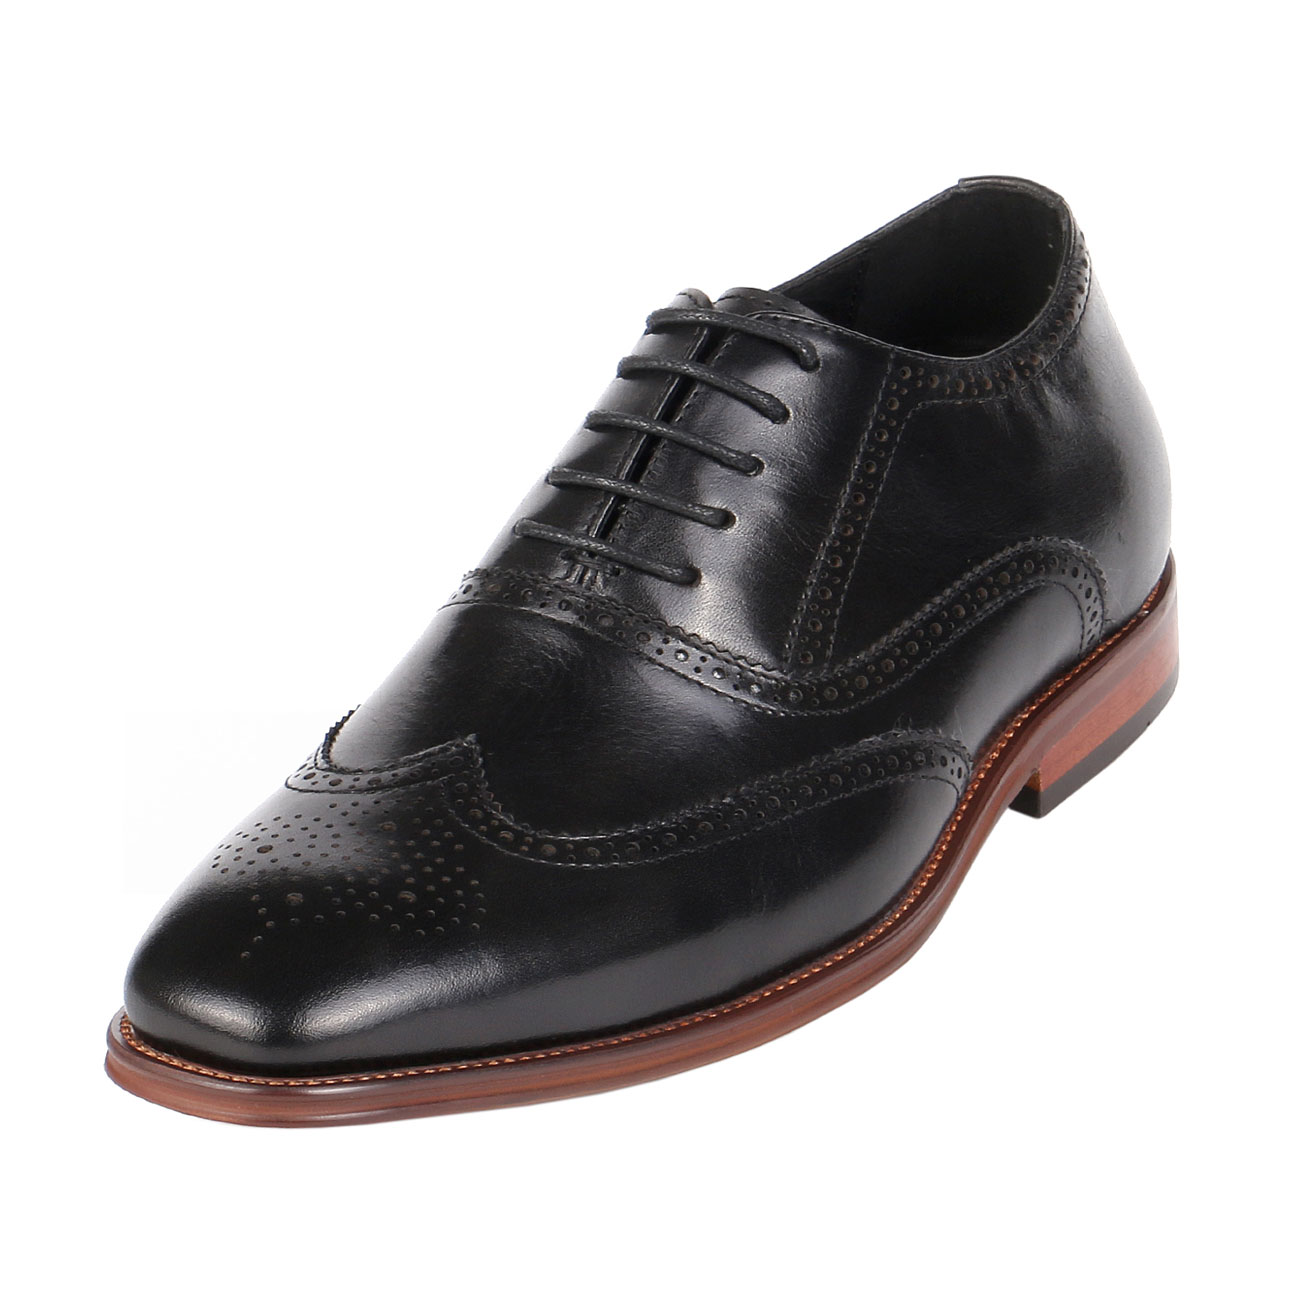 Semi-Brogue Height Increasing Gentlemen Shoes 3